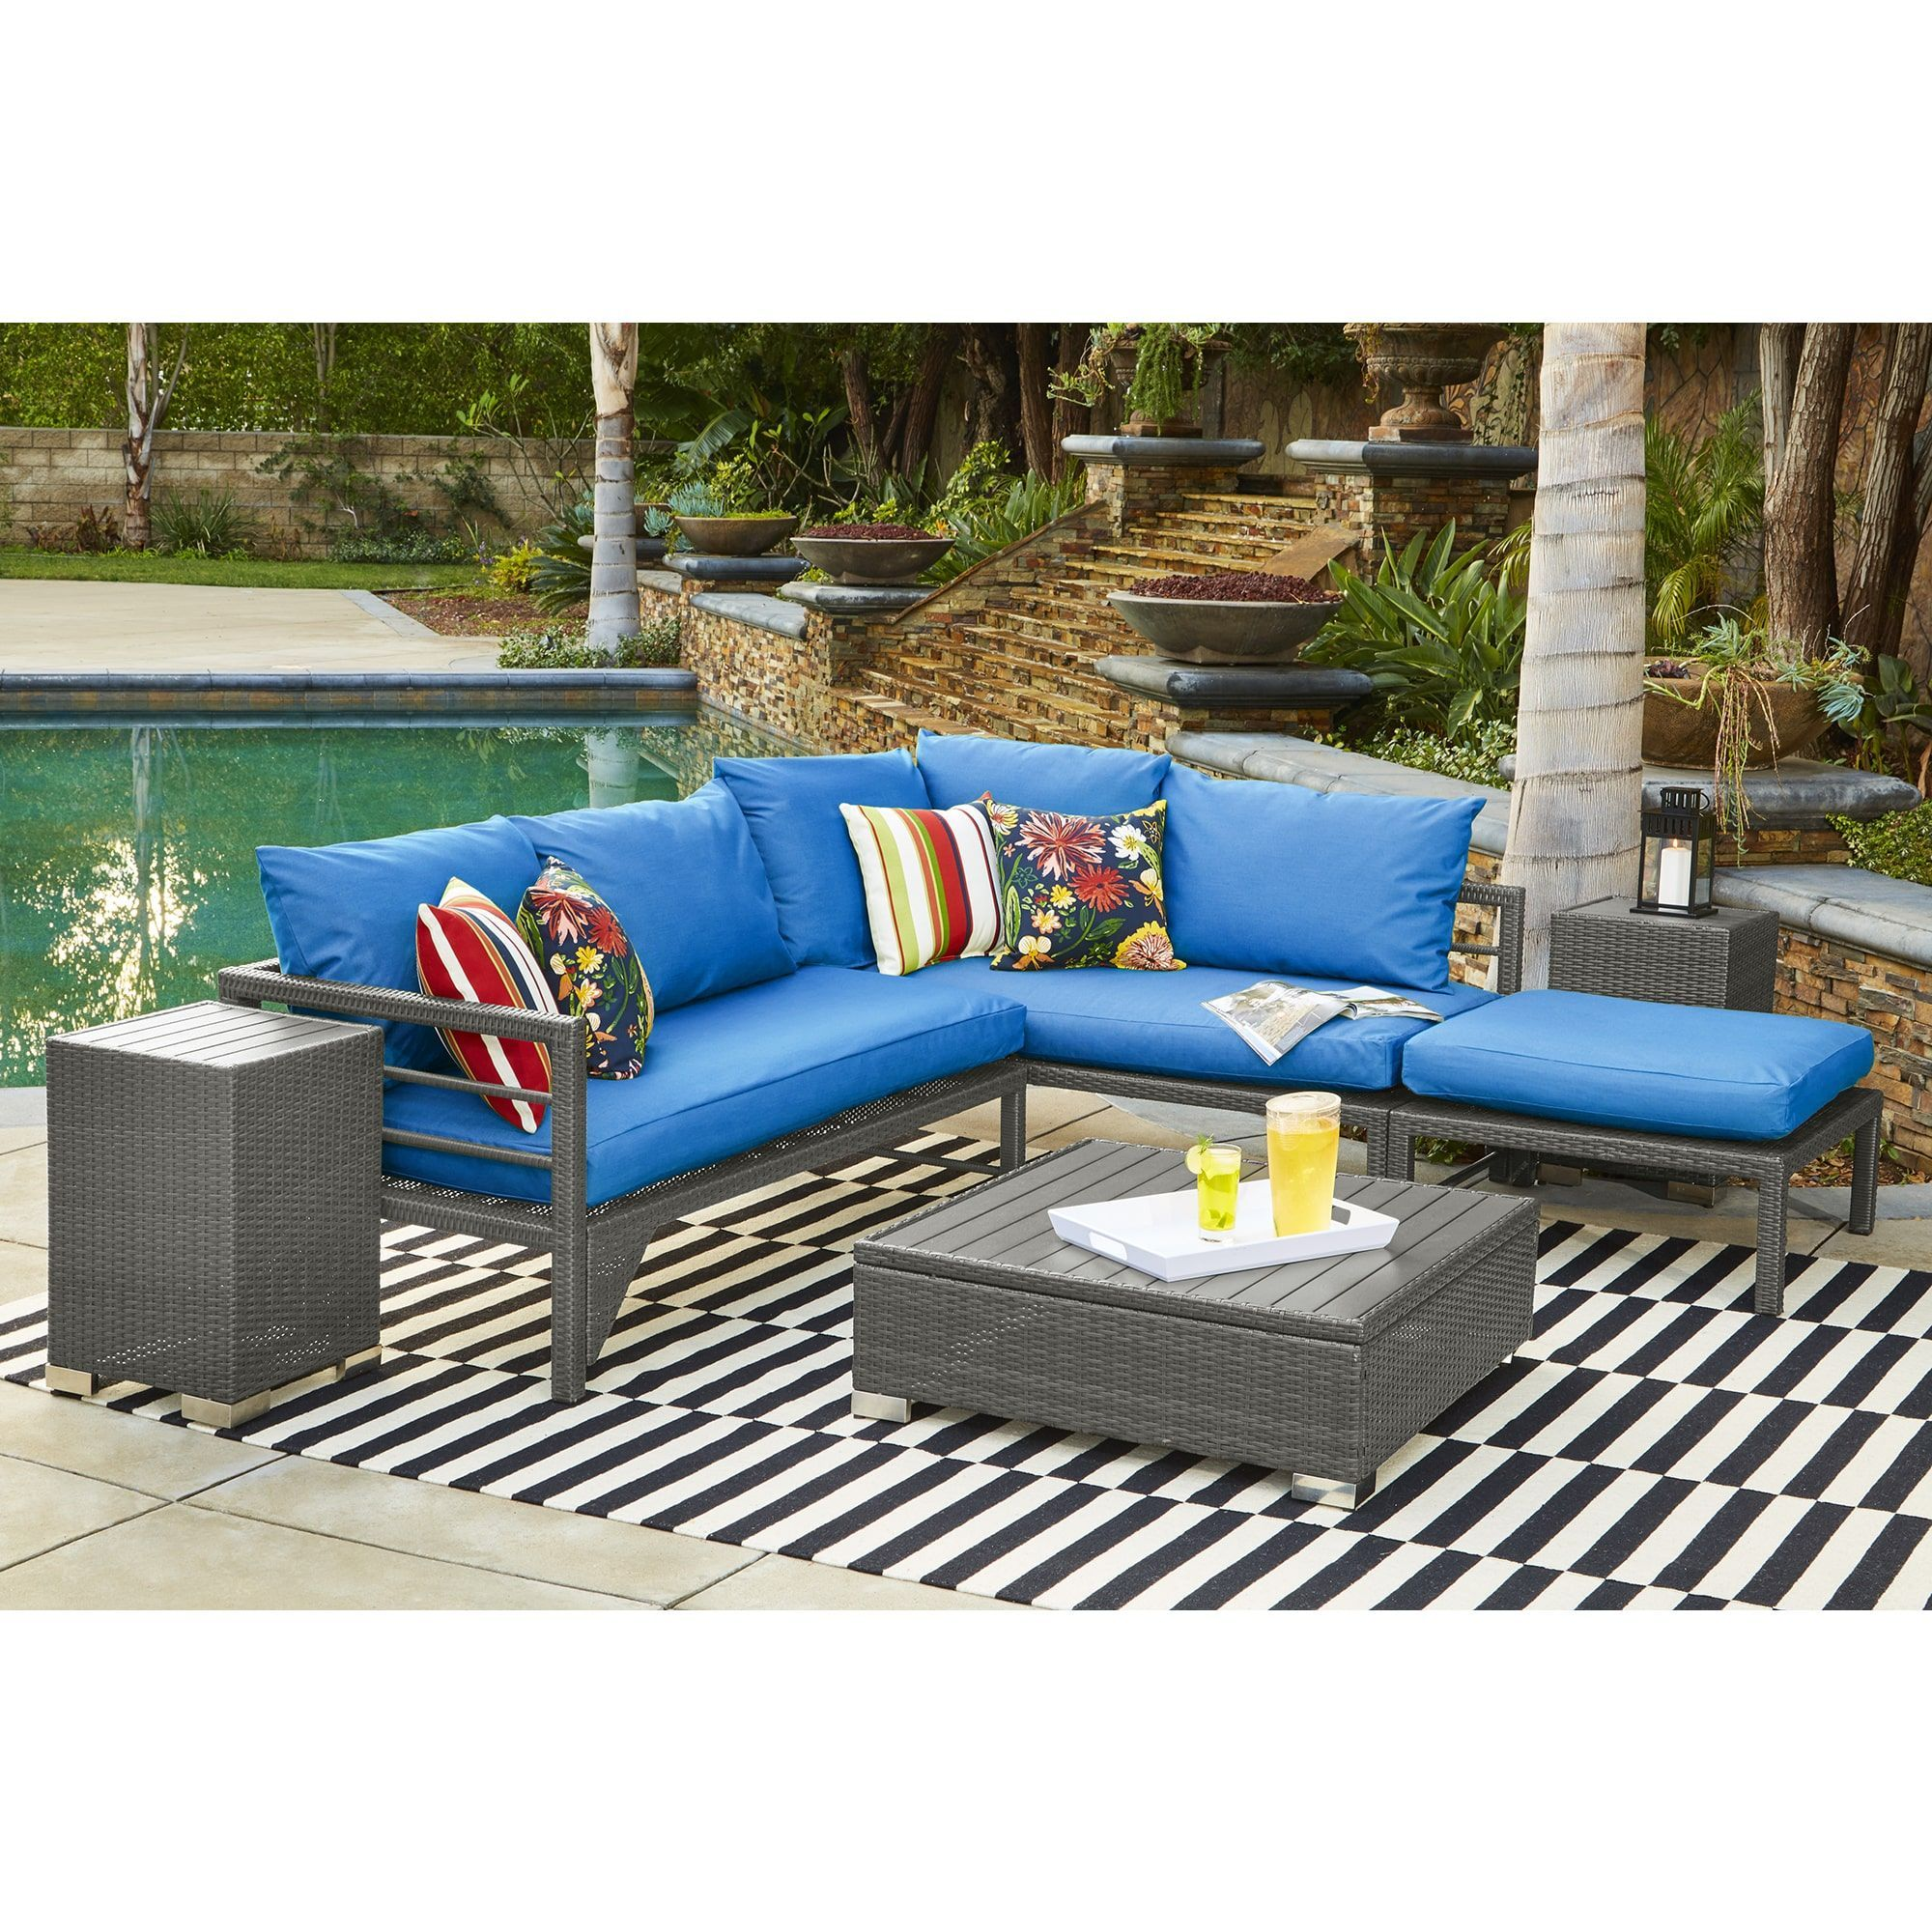 Indoor outdoor grey woven resin rattan sectional sofa with pacific blue sunbrella cushions grey blue size 3 piece sets patio furniture aluminum